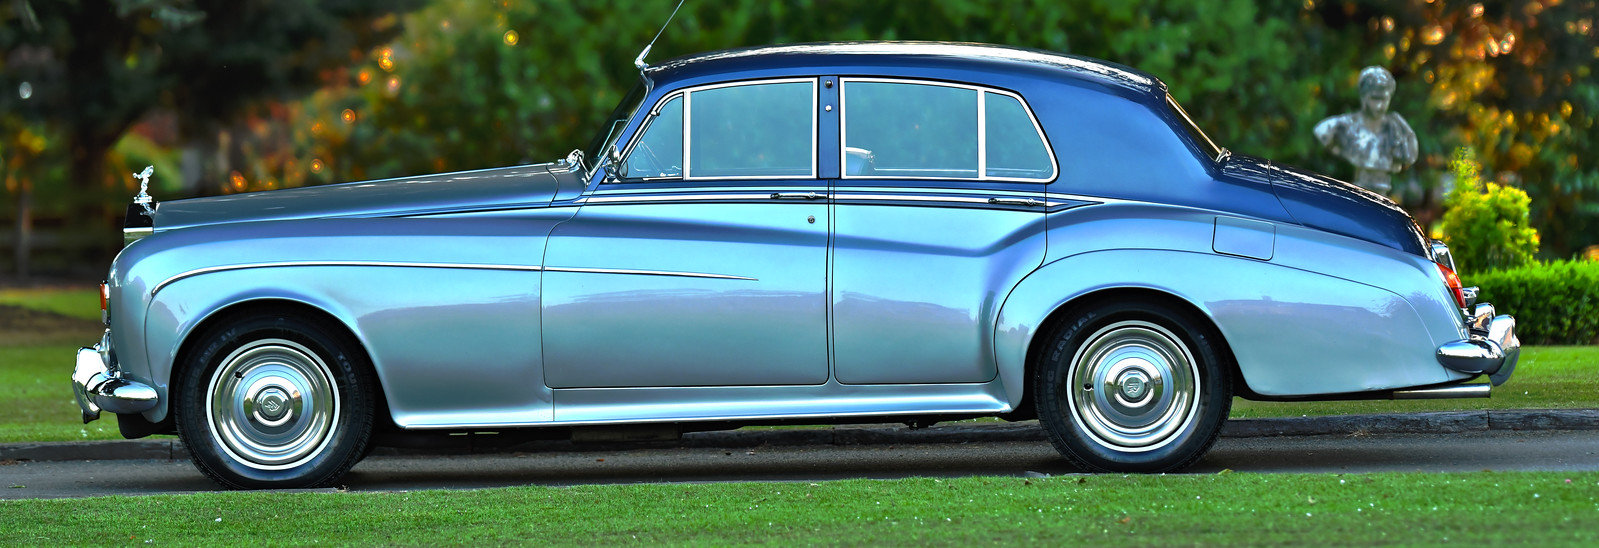 1964 Rolls-Royce Silver Cloud III Standard Steel Saloon SOLD (picture 3 of 6)